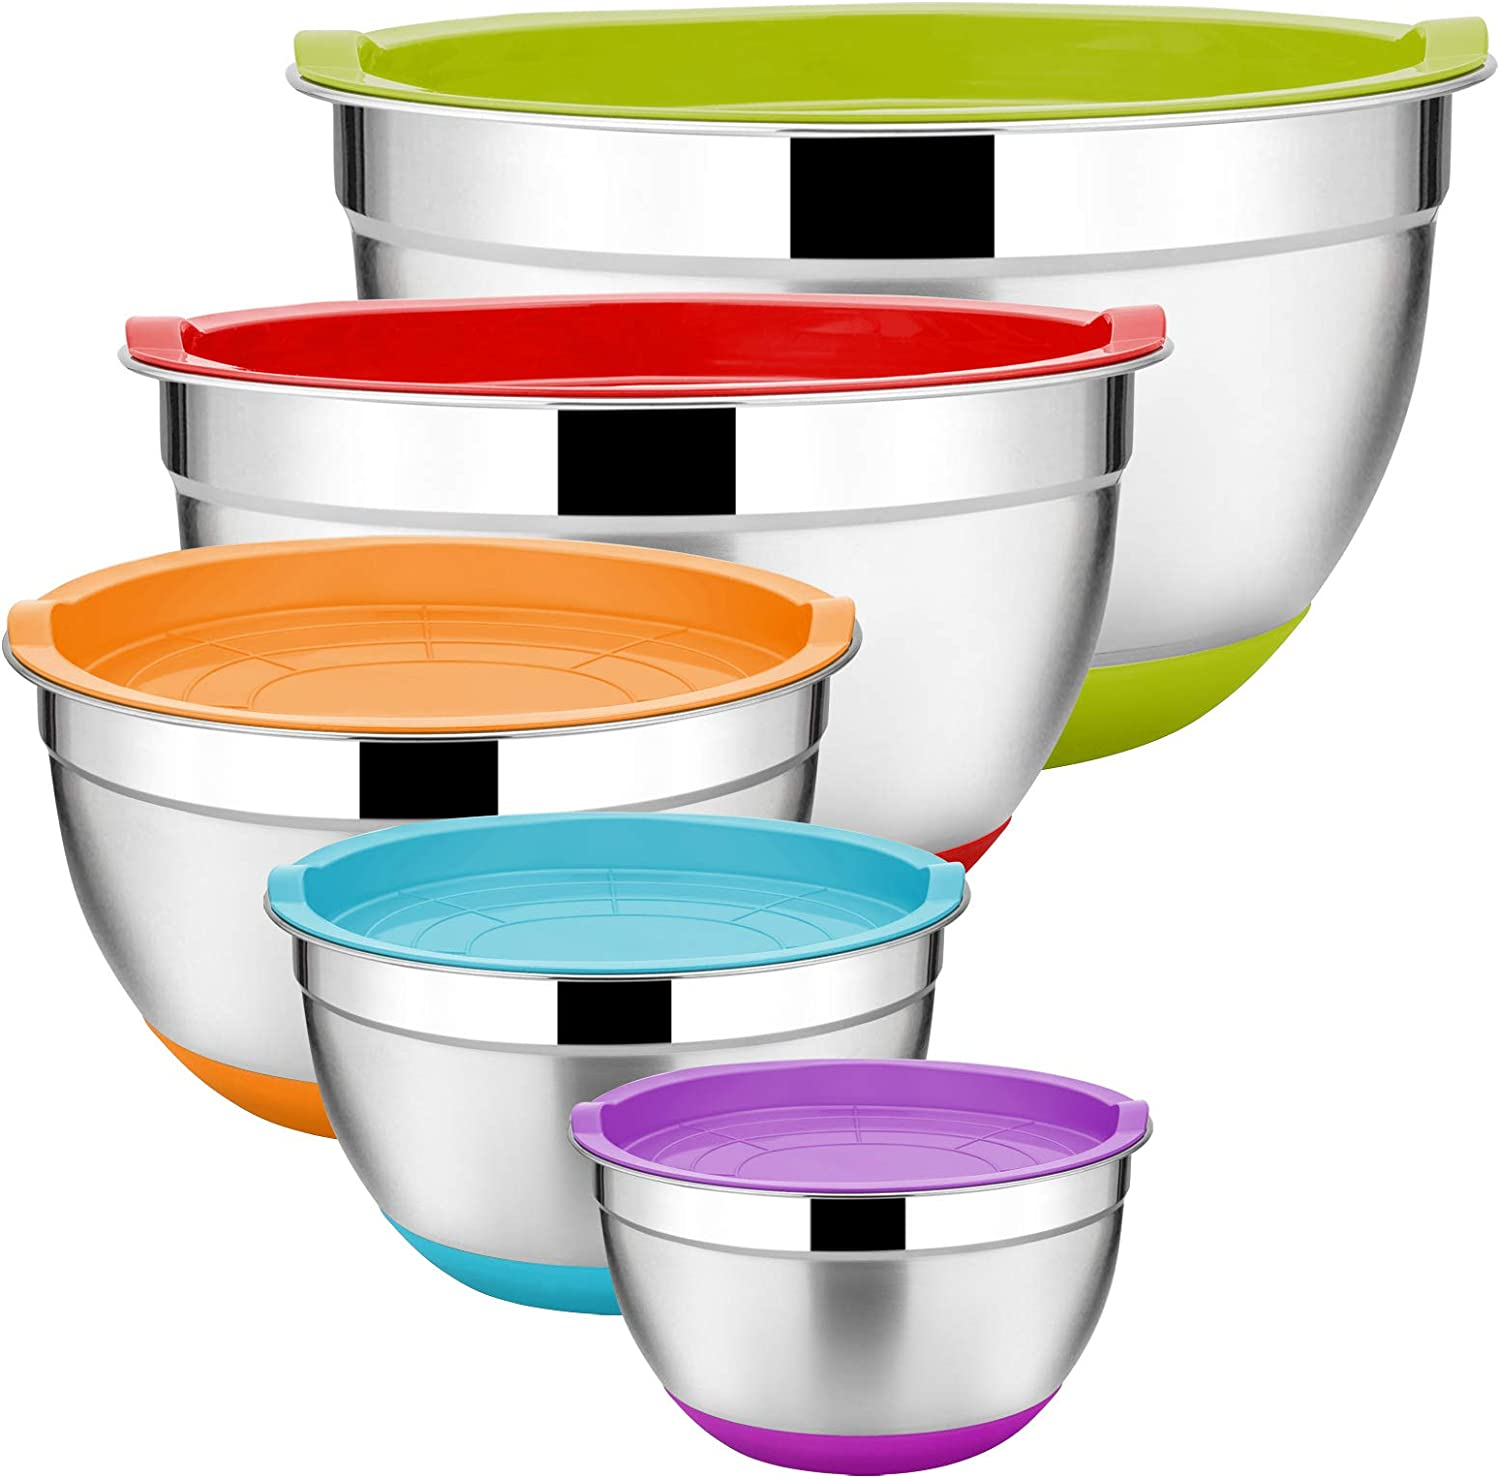 Stainless Steel Mixing Bowls Set of 5, Size 8/5/3/2.5/1.5 QT, E-far Metal Nesting Bowls with Colorful Airtight Lids, Measurement Marks & Non-Slip Bottoms, Great for Cooking, Baking, Serving, Food Prep